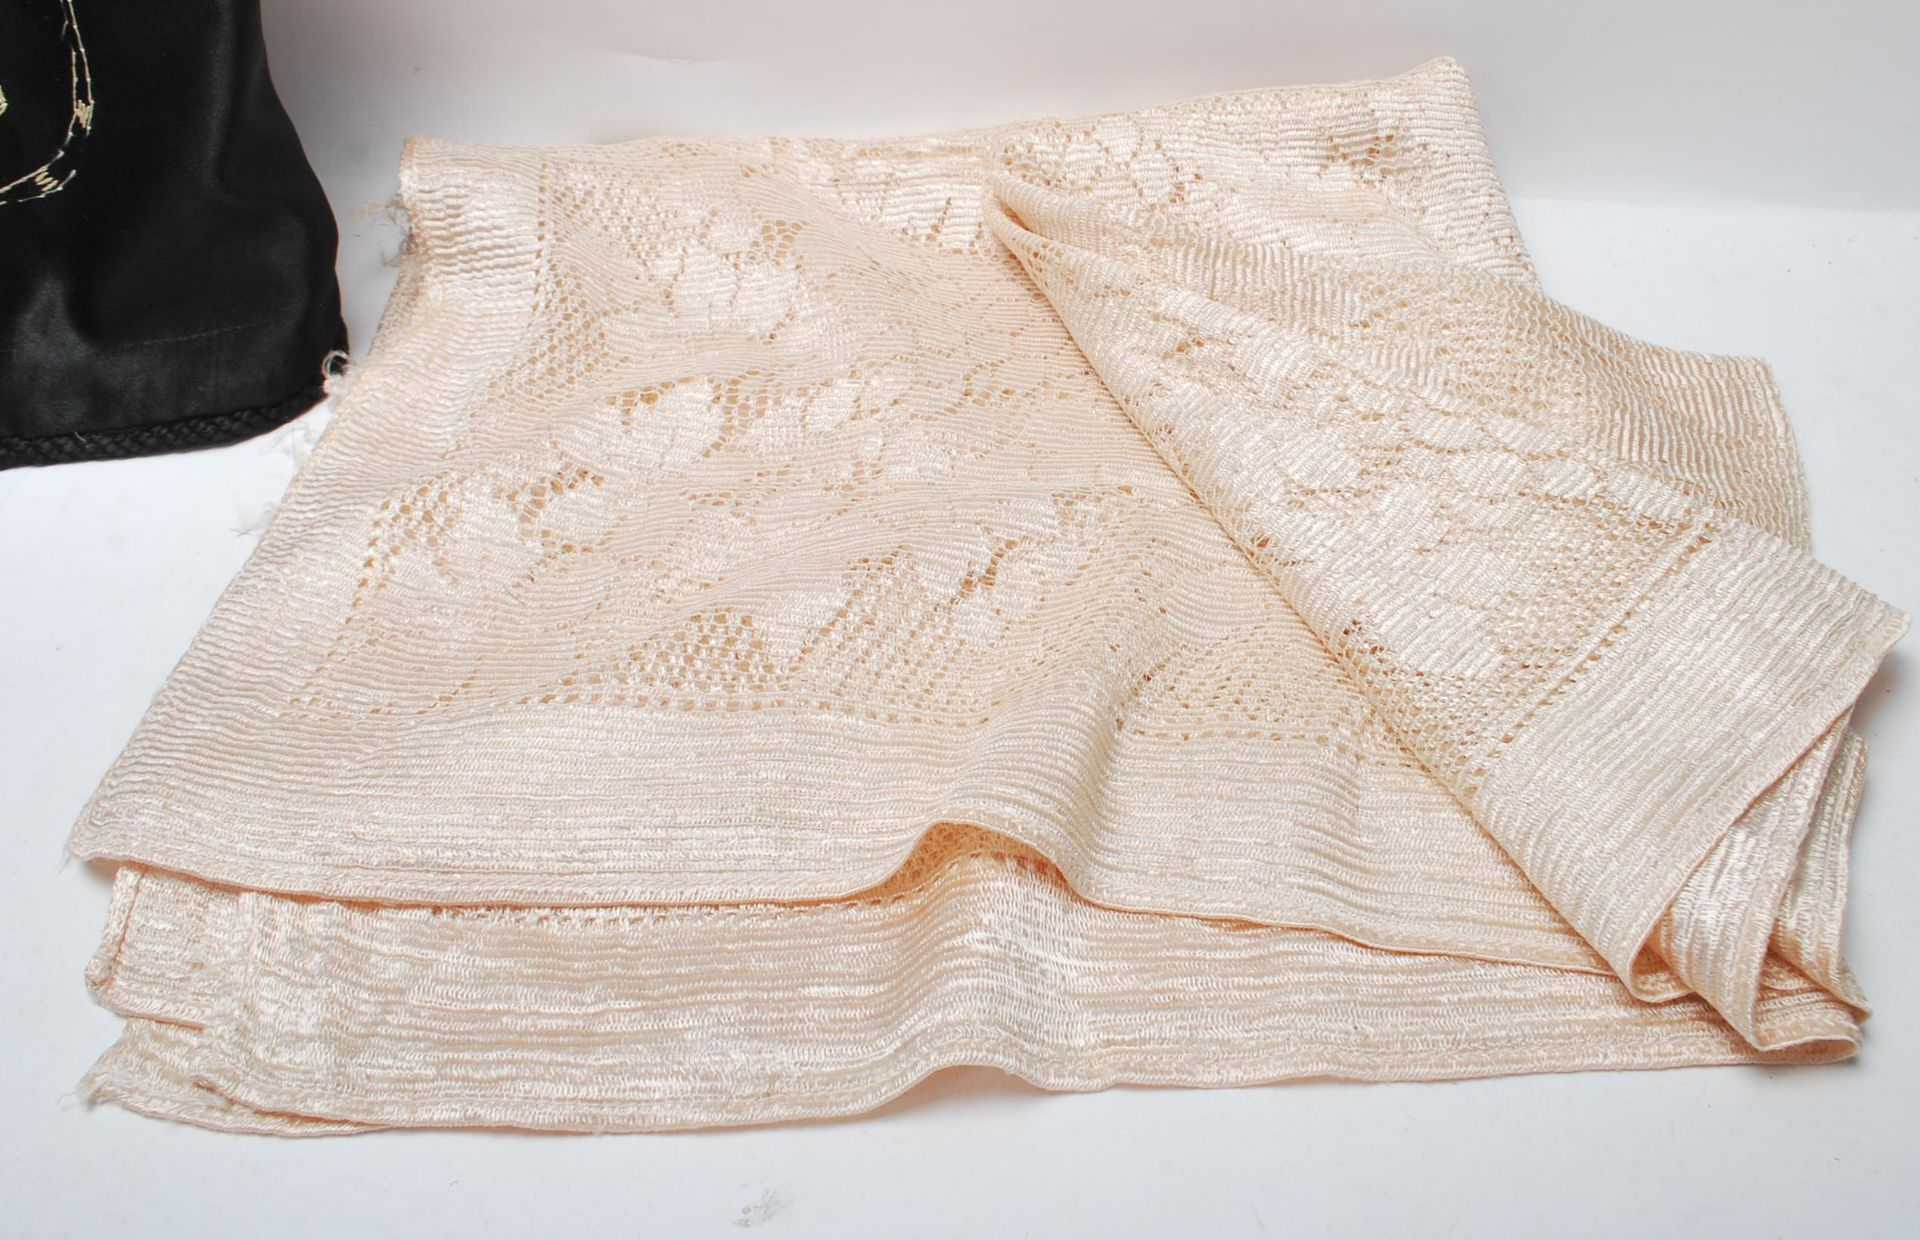 19TH CENTURY VICTORIAN TABLECLOTH AND PILLOW CASES - Image 8 of 10